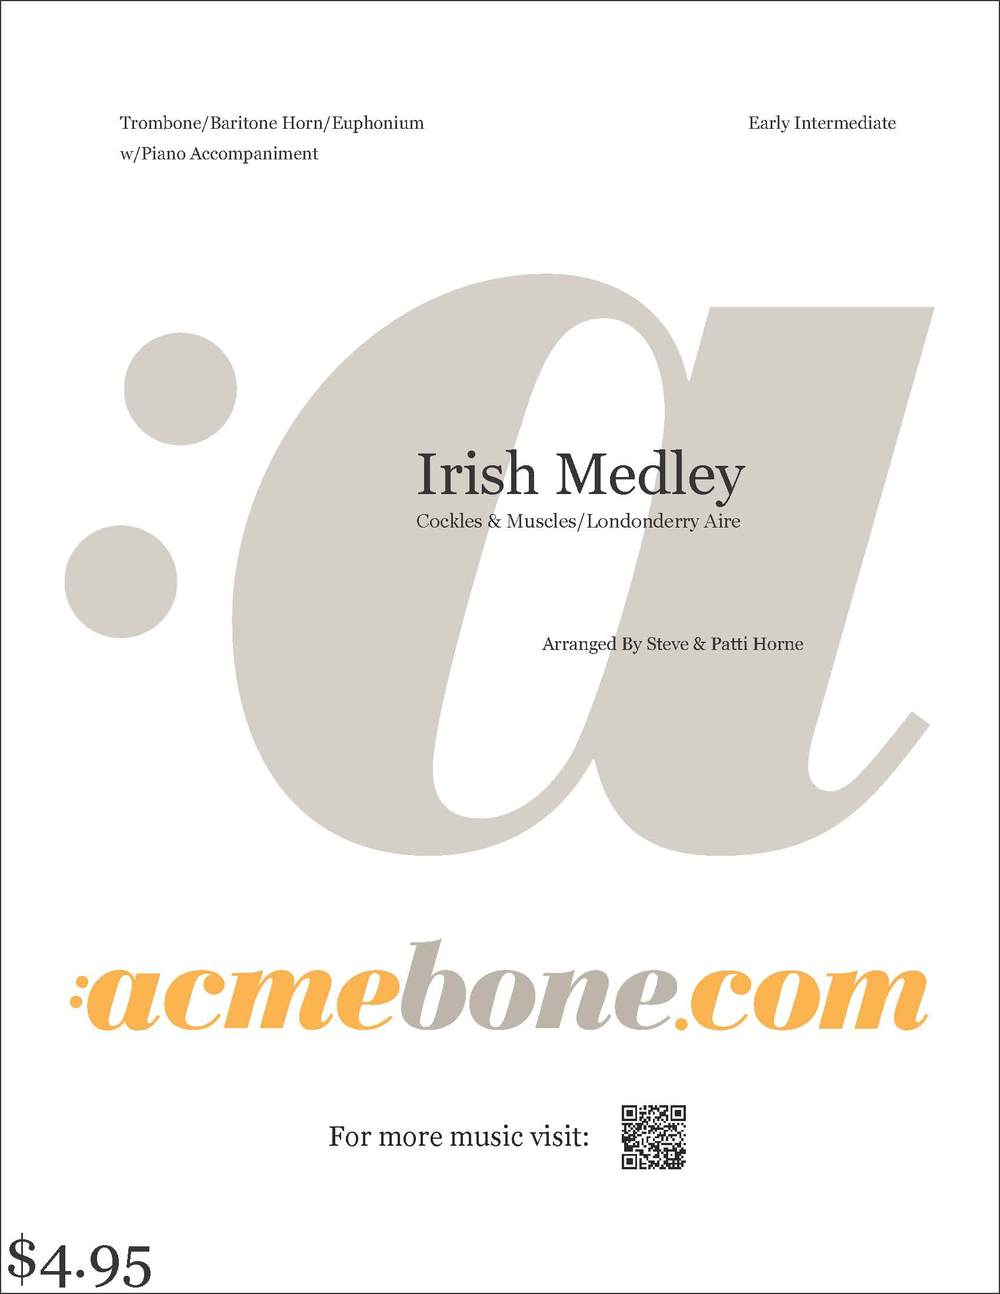 Irish Medley_digital_cover_w-bo_price.jpg